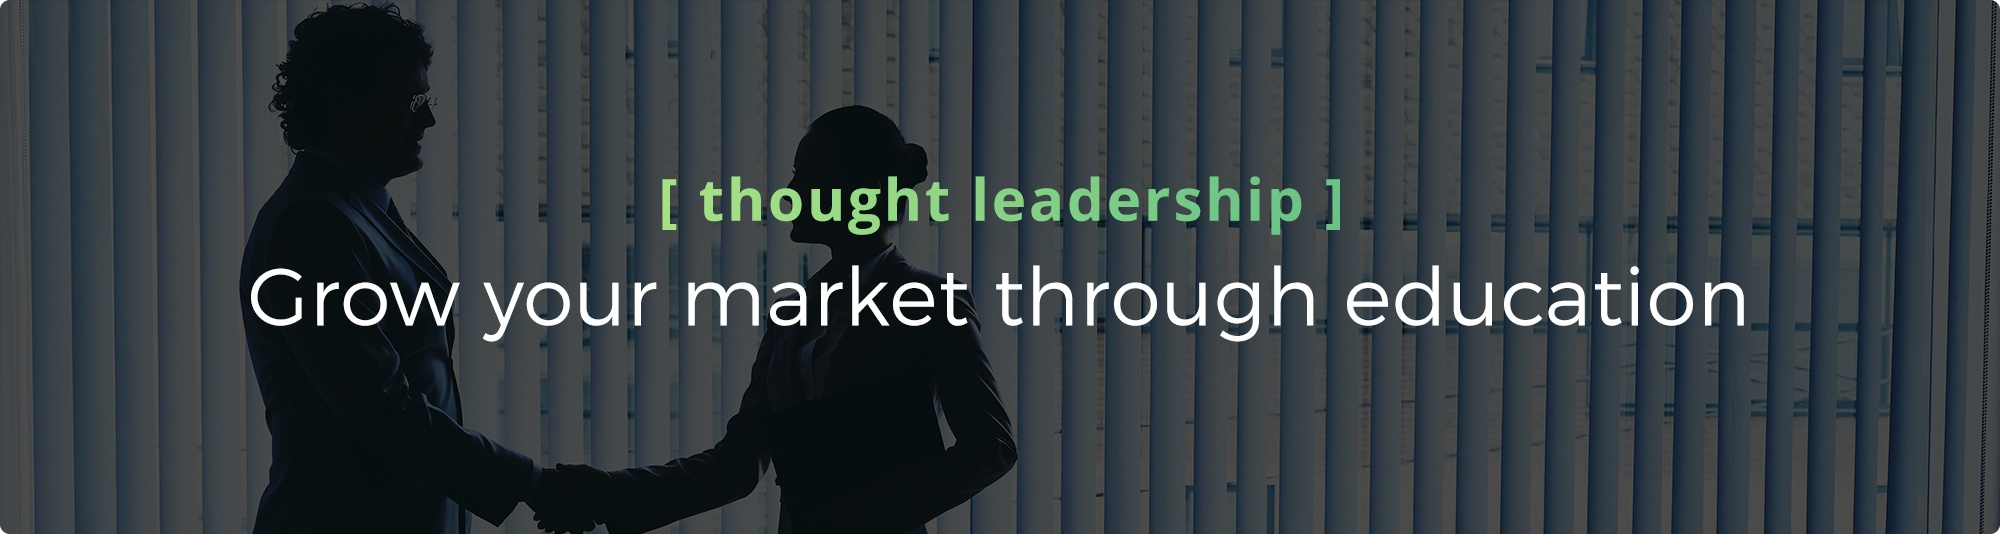 3 Thought Leadership Series Header.jpg